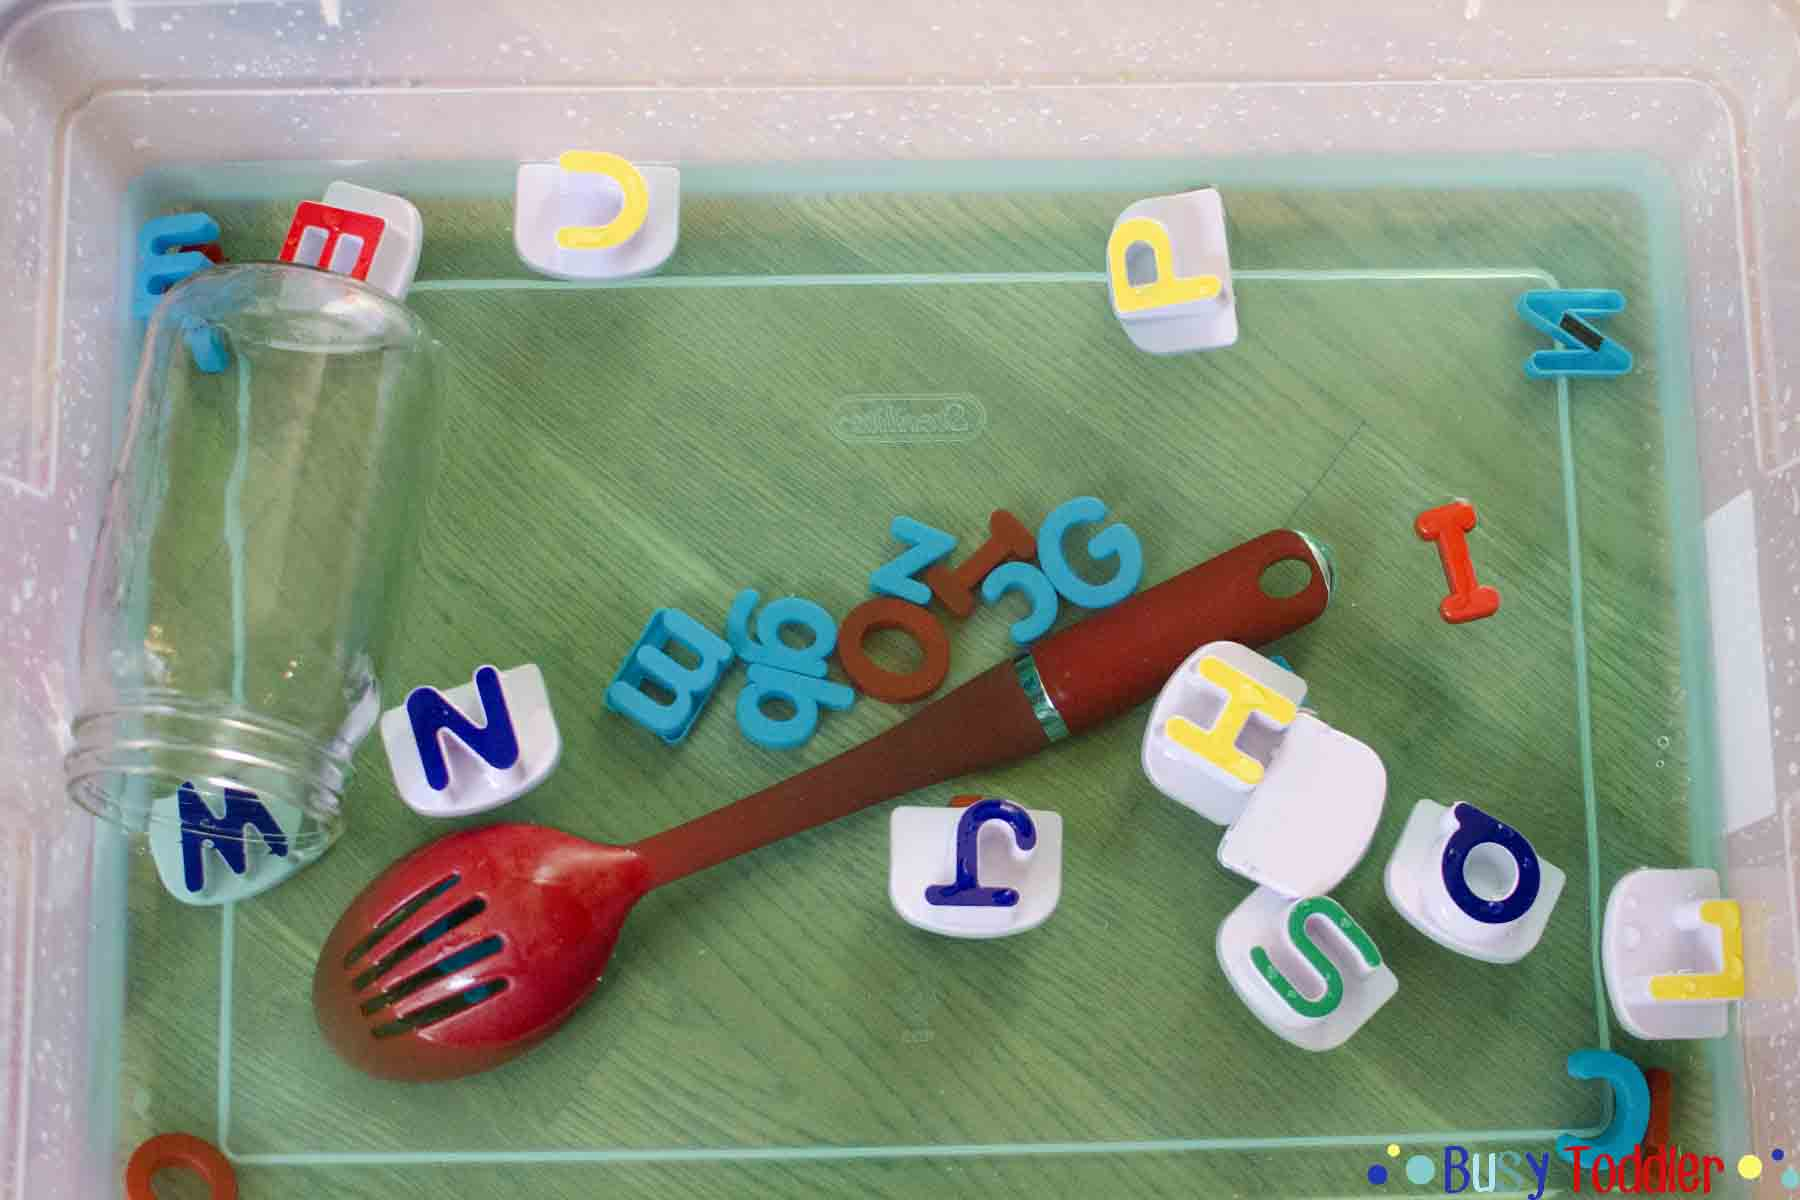 ALPHABET SOUP: A no-cost high fun toddler activity. A water sensory activity for babies, toddlers, and preschoolers.